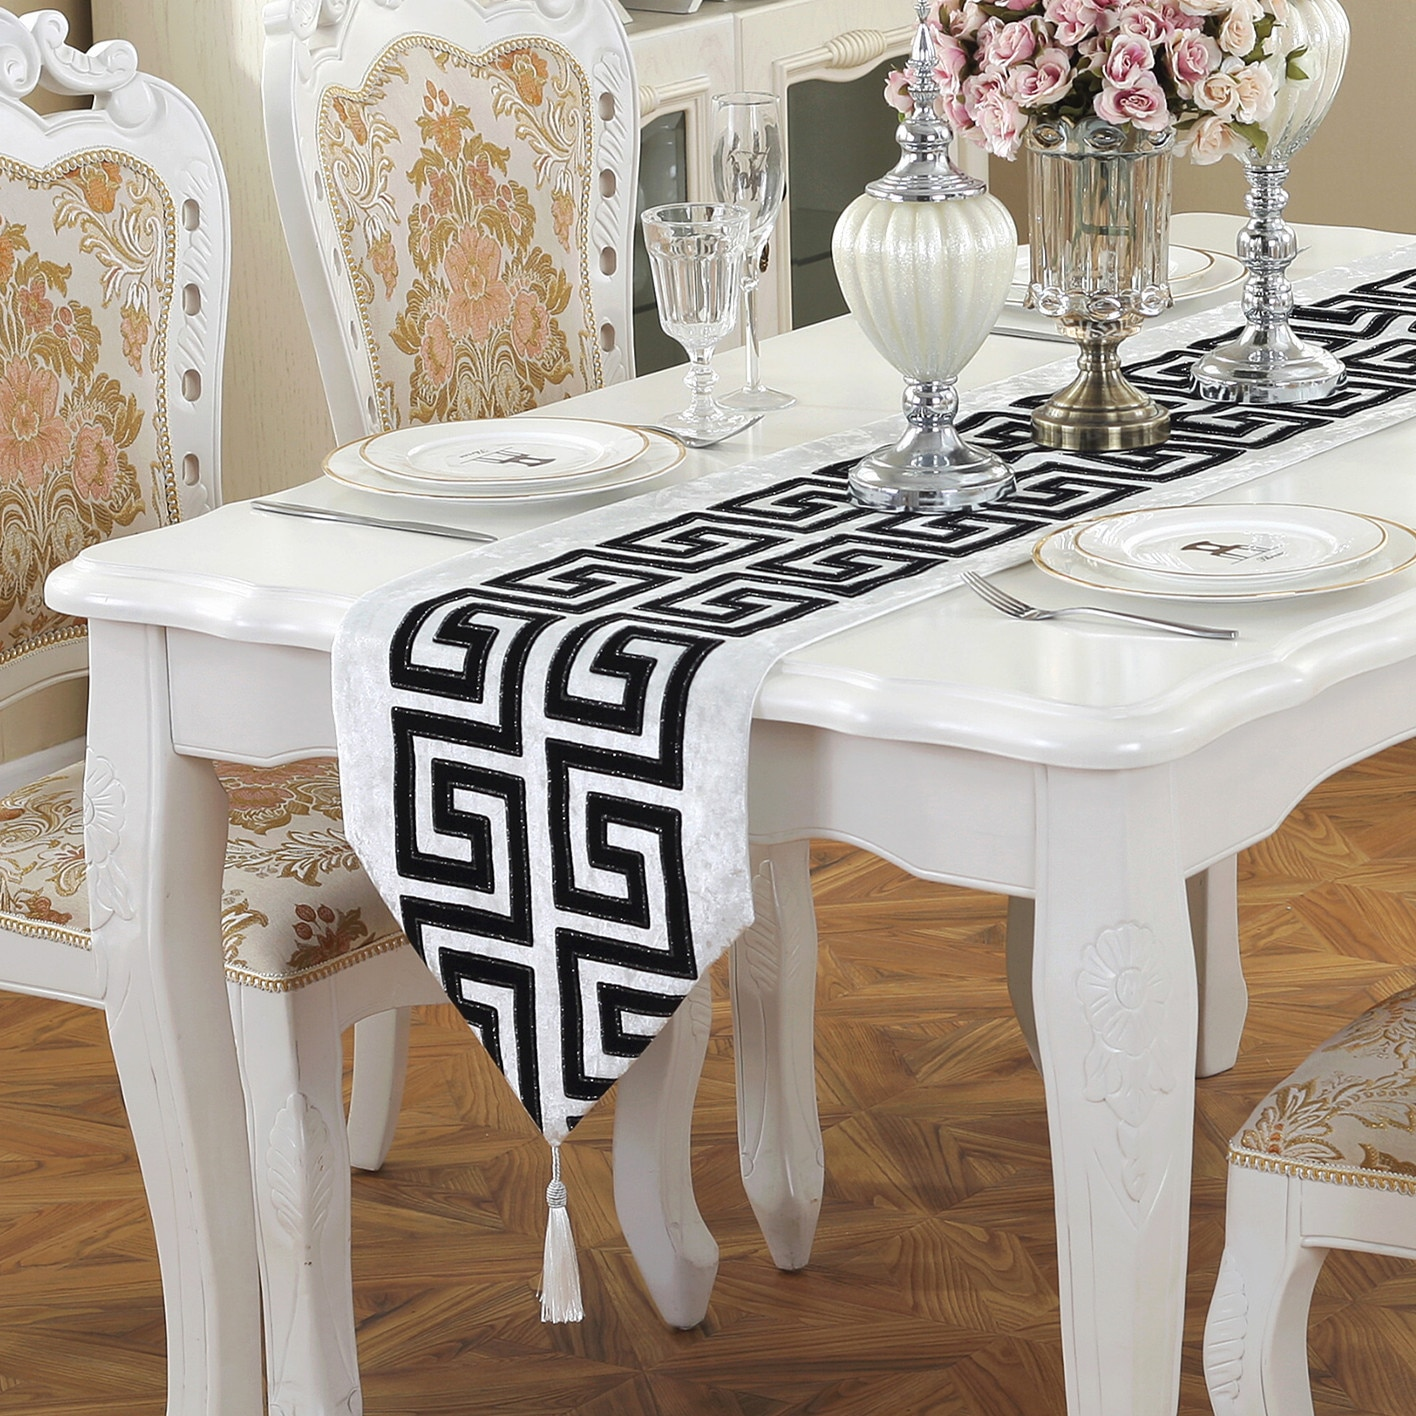 Simple Modern Chinese Style Classic Retro Black And White Fashion Tablecloth Flag